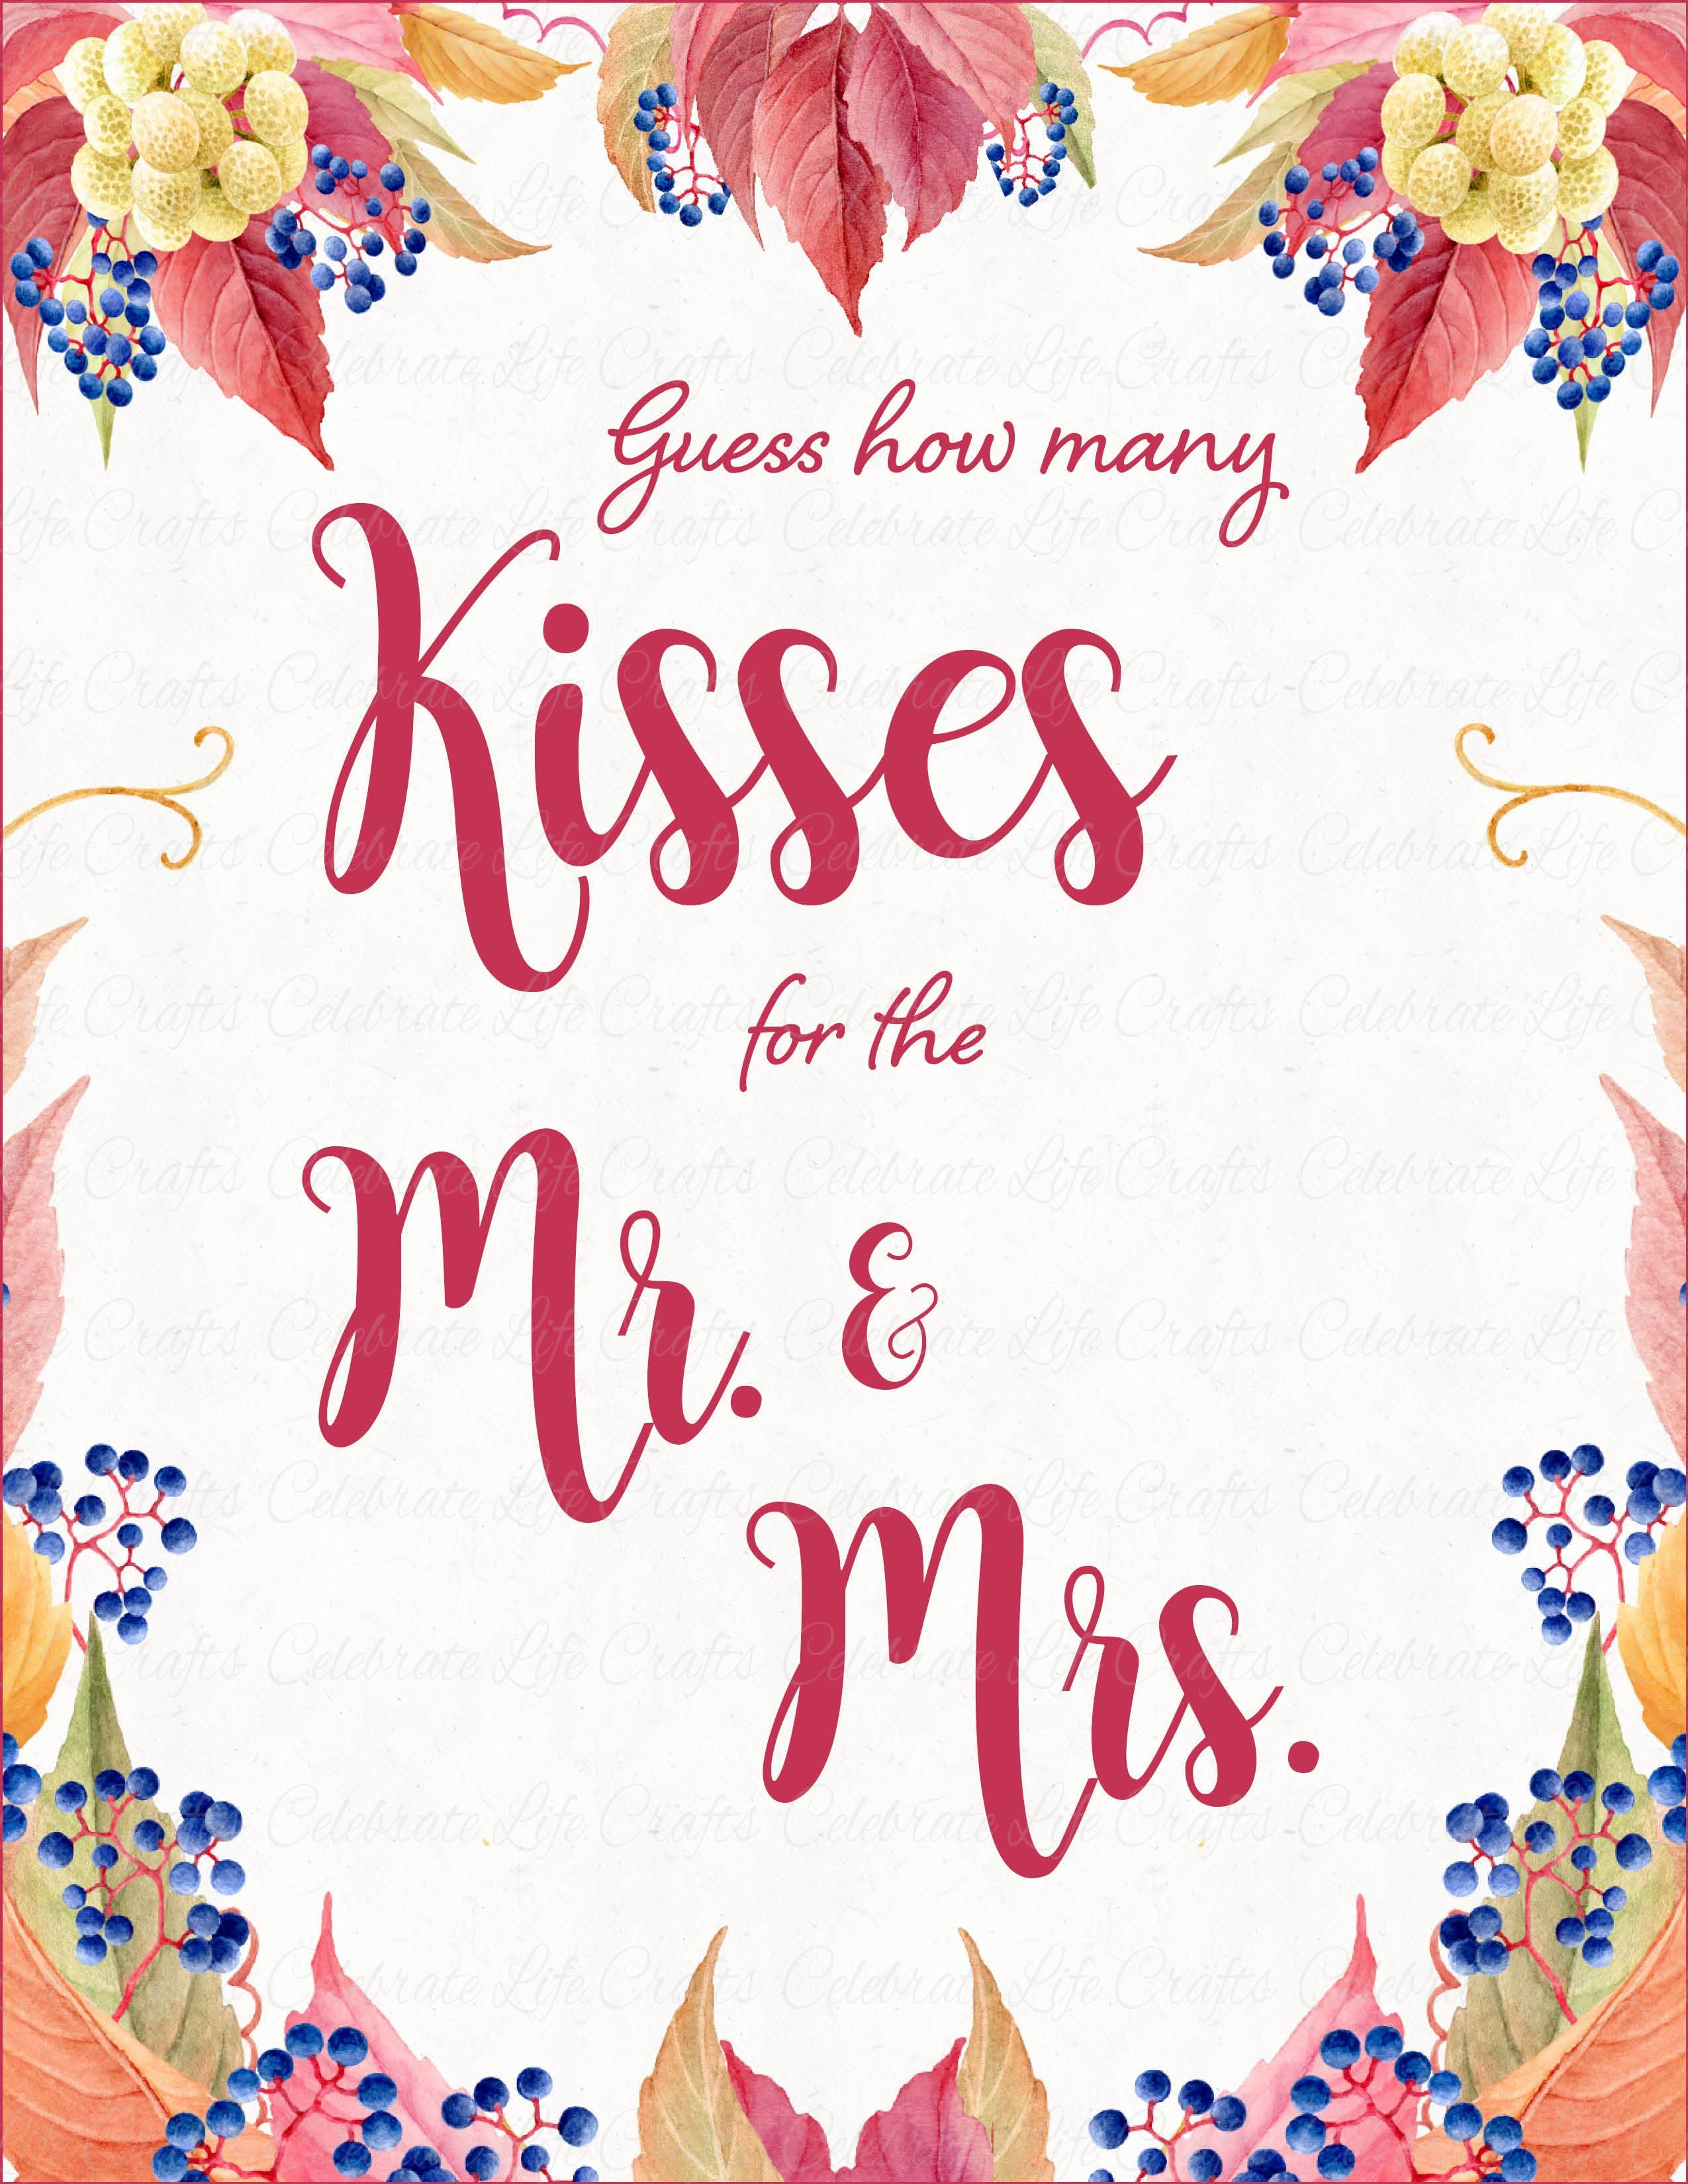 image relating to Guess How Many in the Jar Printable named How Countless Kisses Wedding day Reception Signal and Guessing